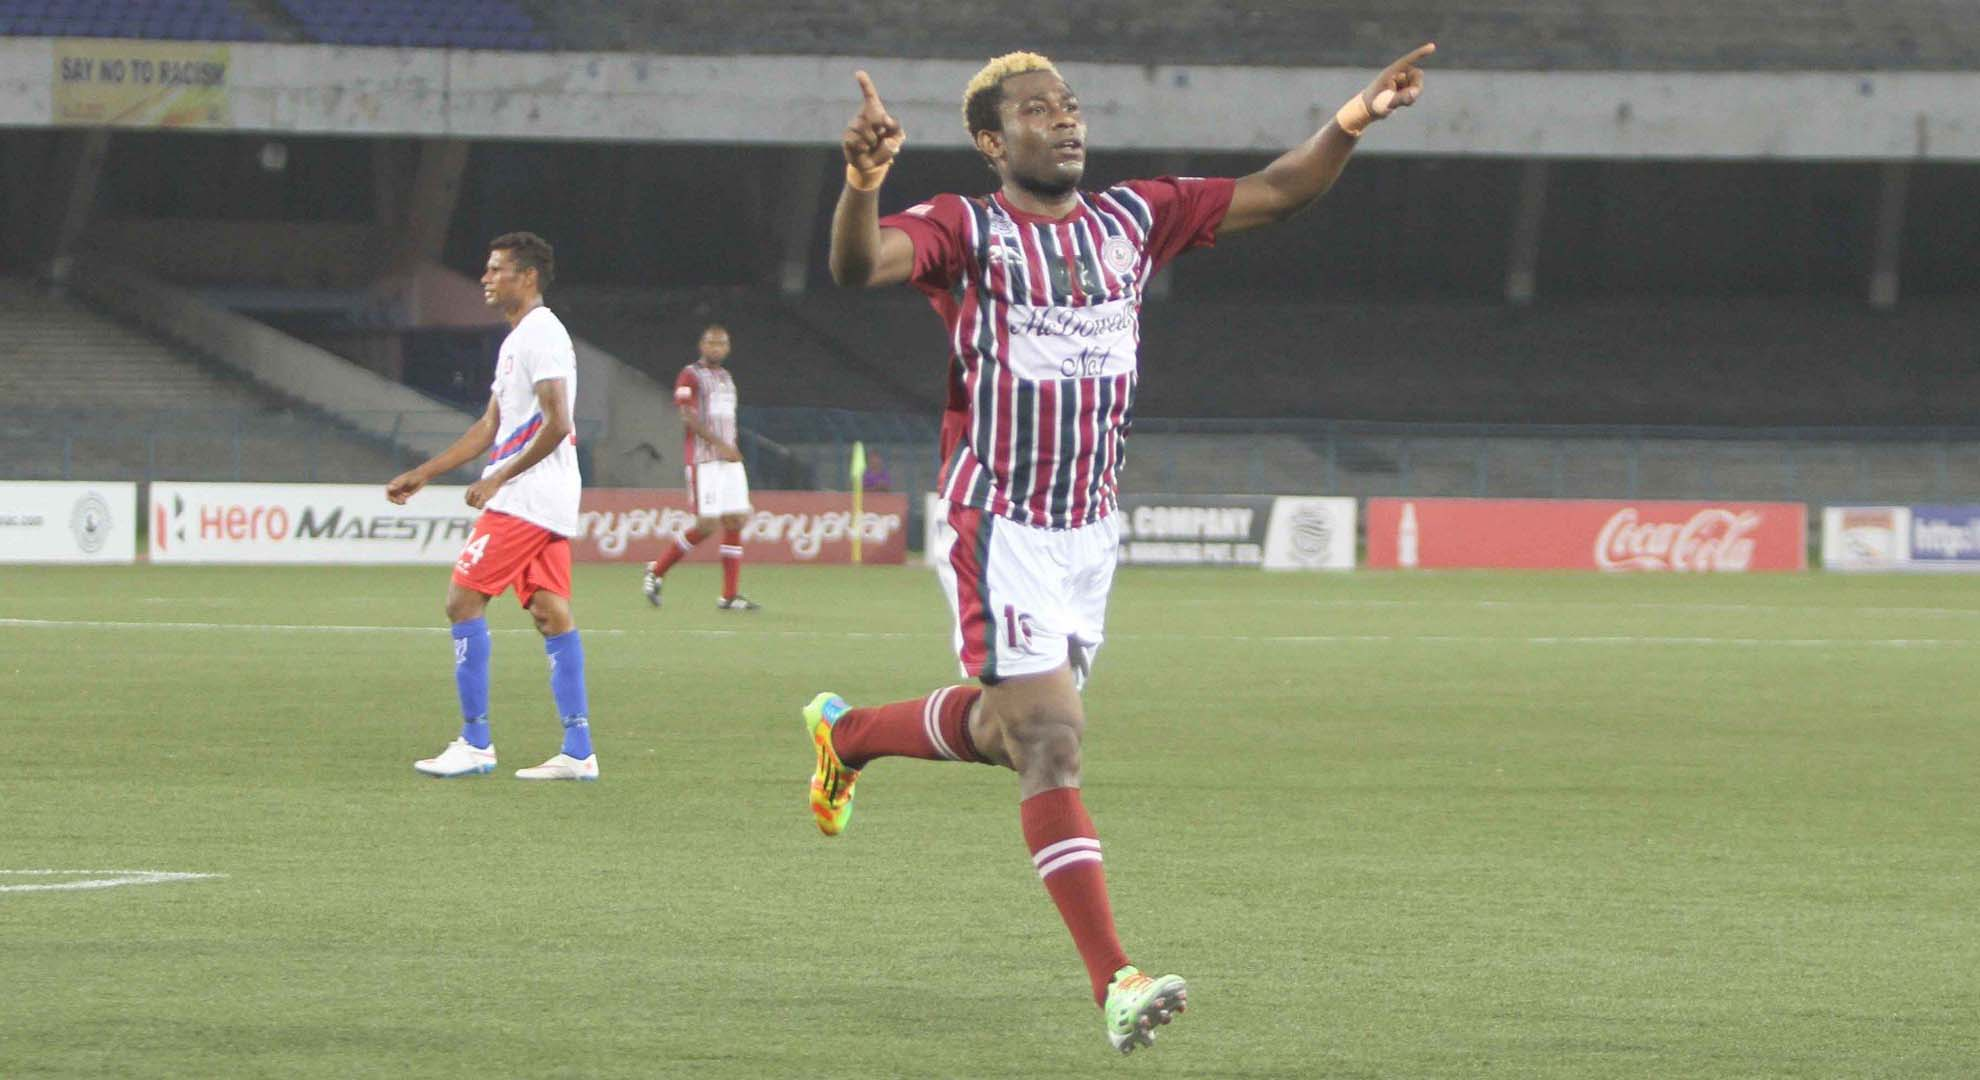 Sony Norde Mohun Bagan Bharat FC I-League 11042015